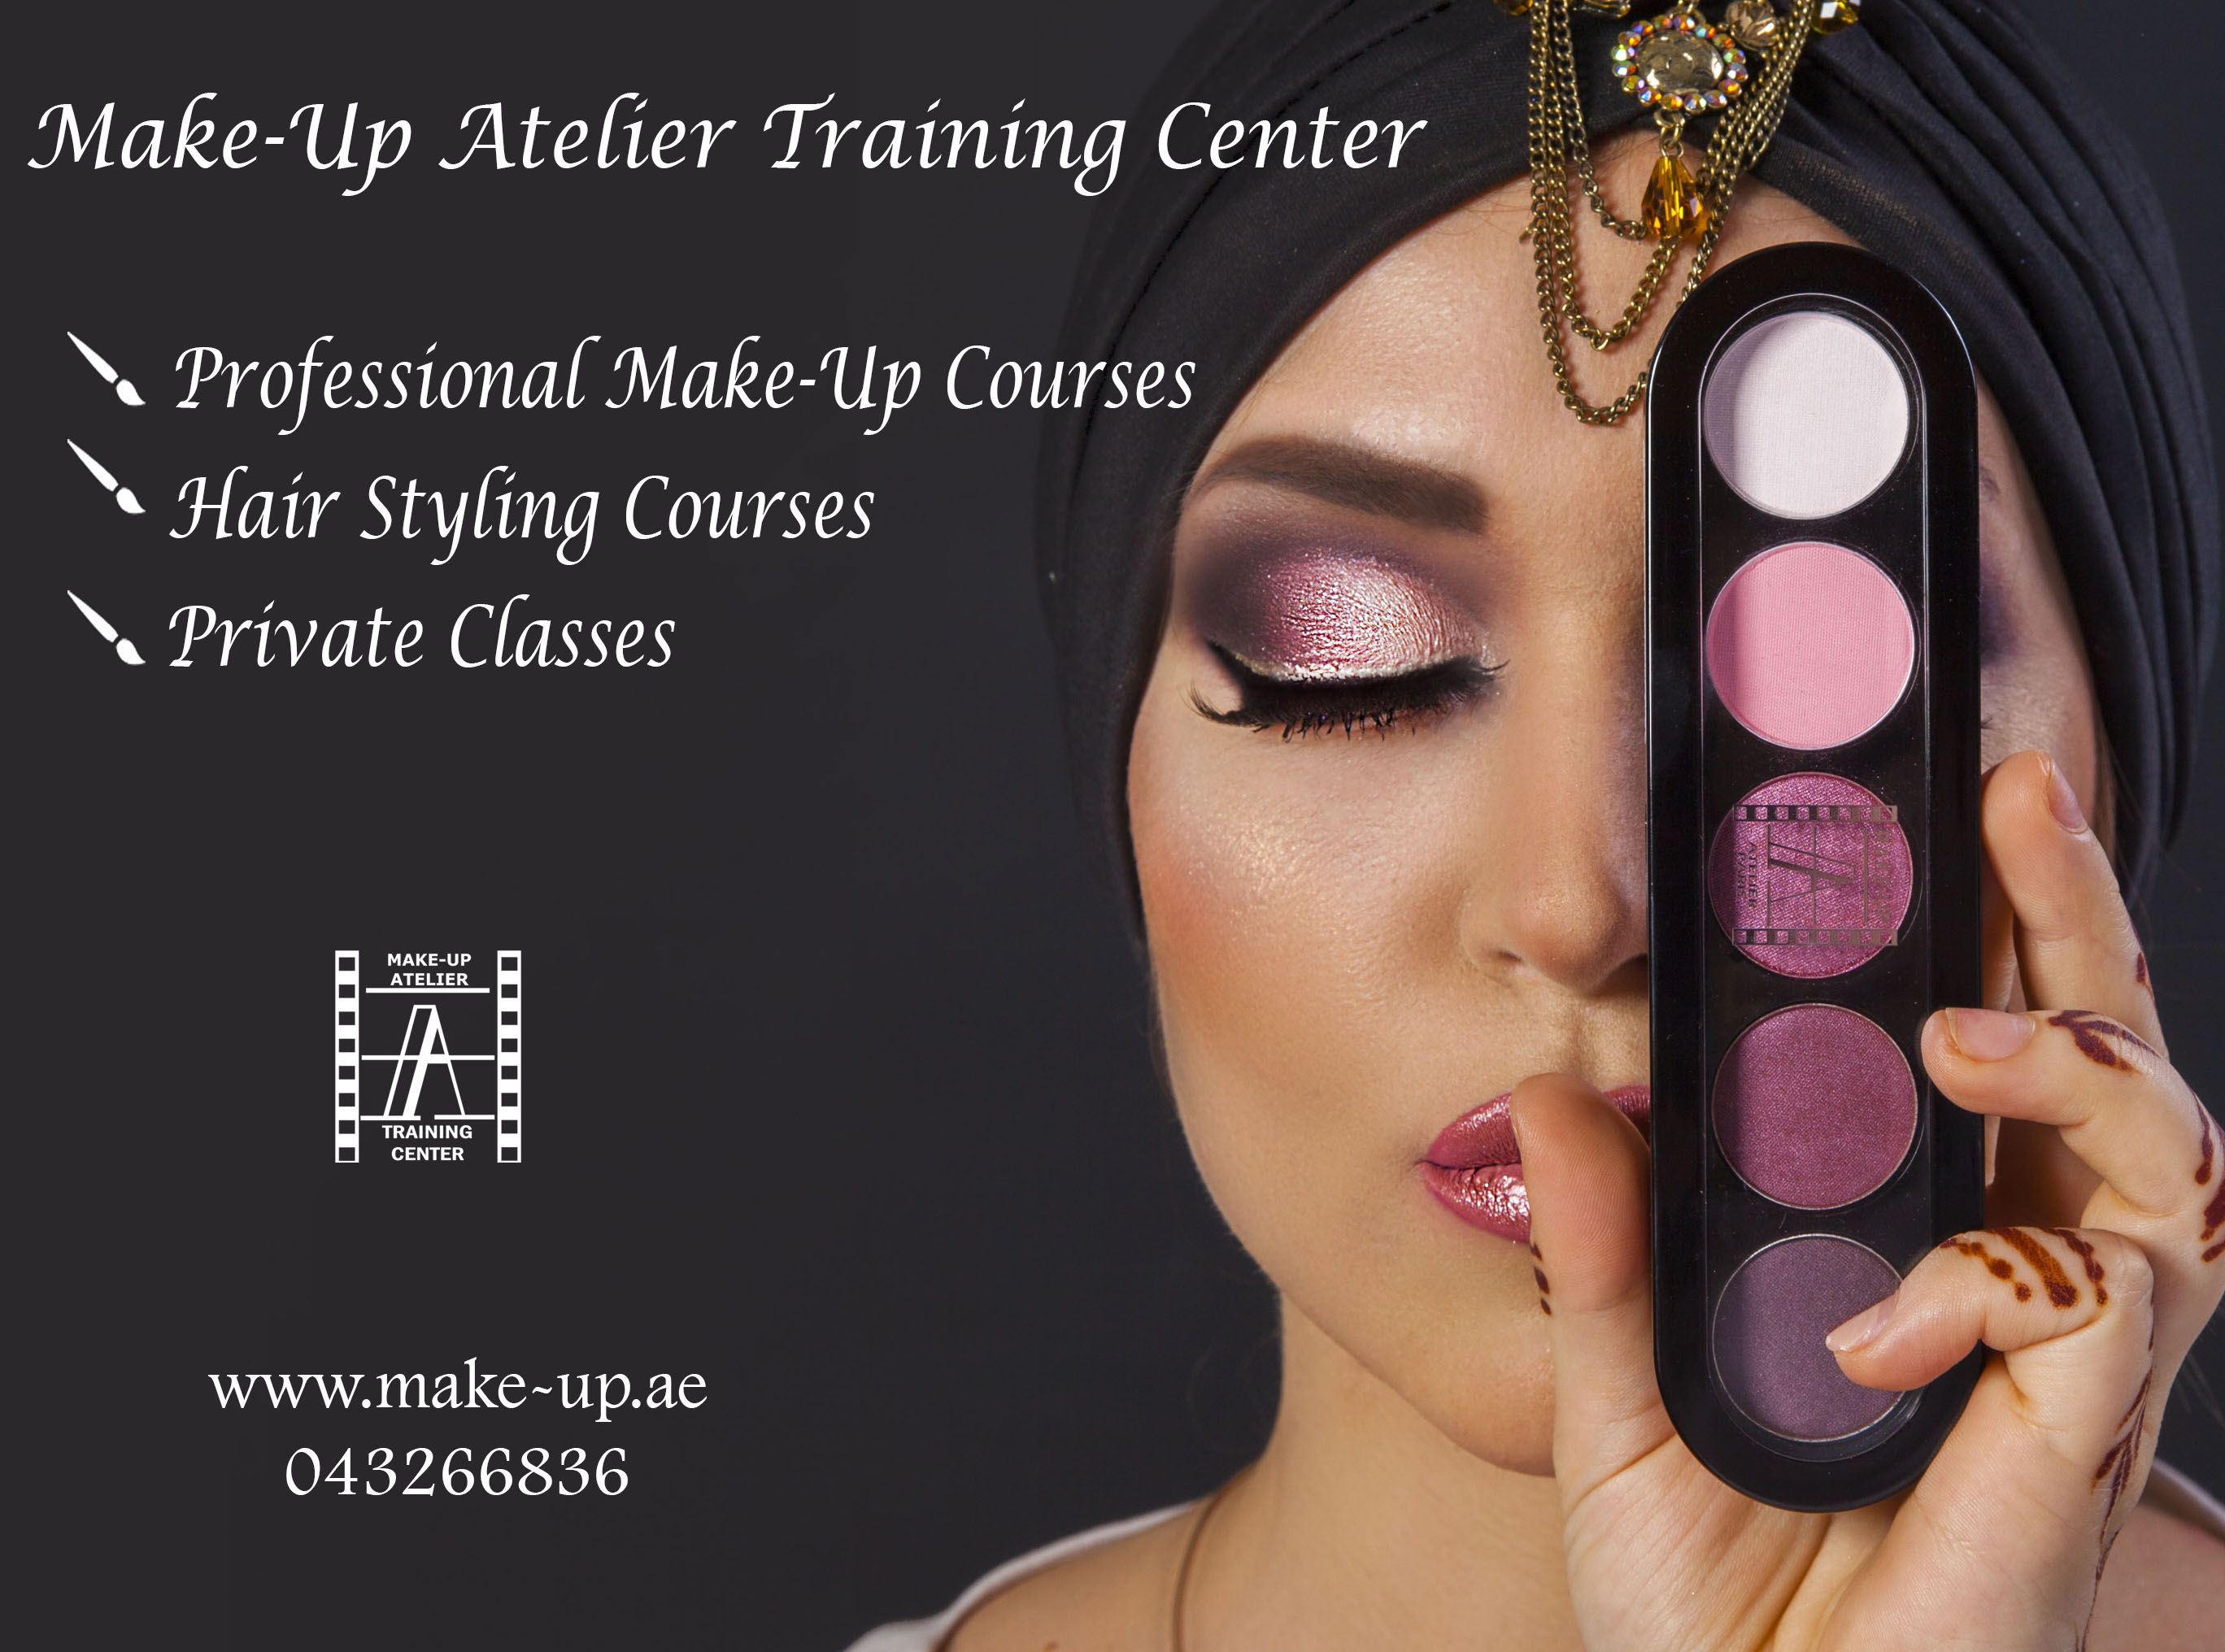 Make Up Atelier Training Center Makeup Courses And Hair Styling Courses Offered At Make Up Atelier Training Makeup Course Course Hair Special Effects Makeup